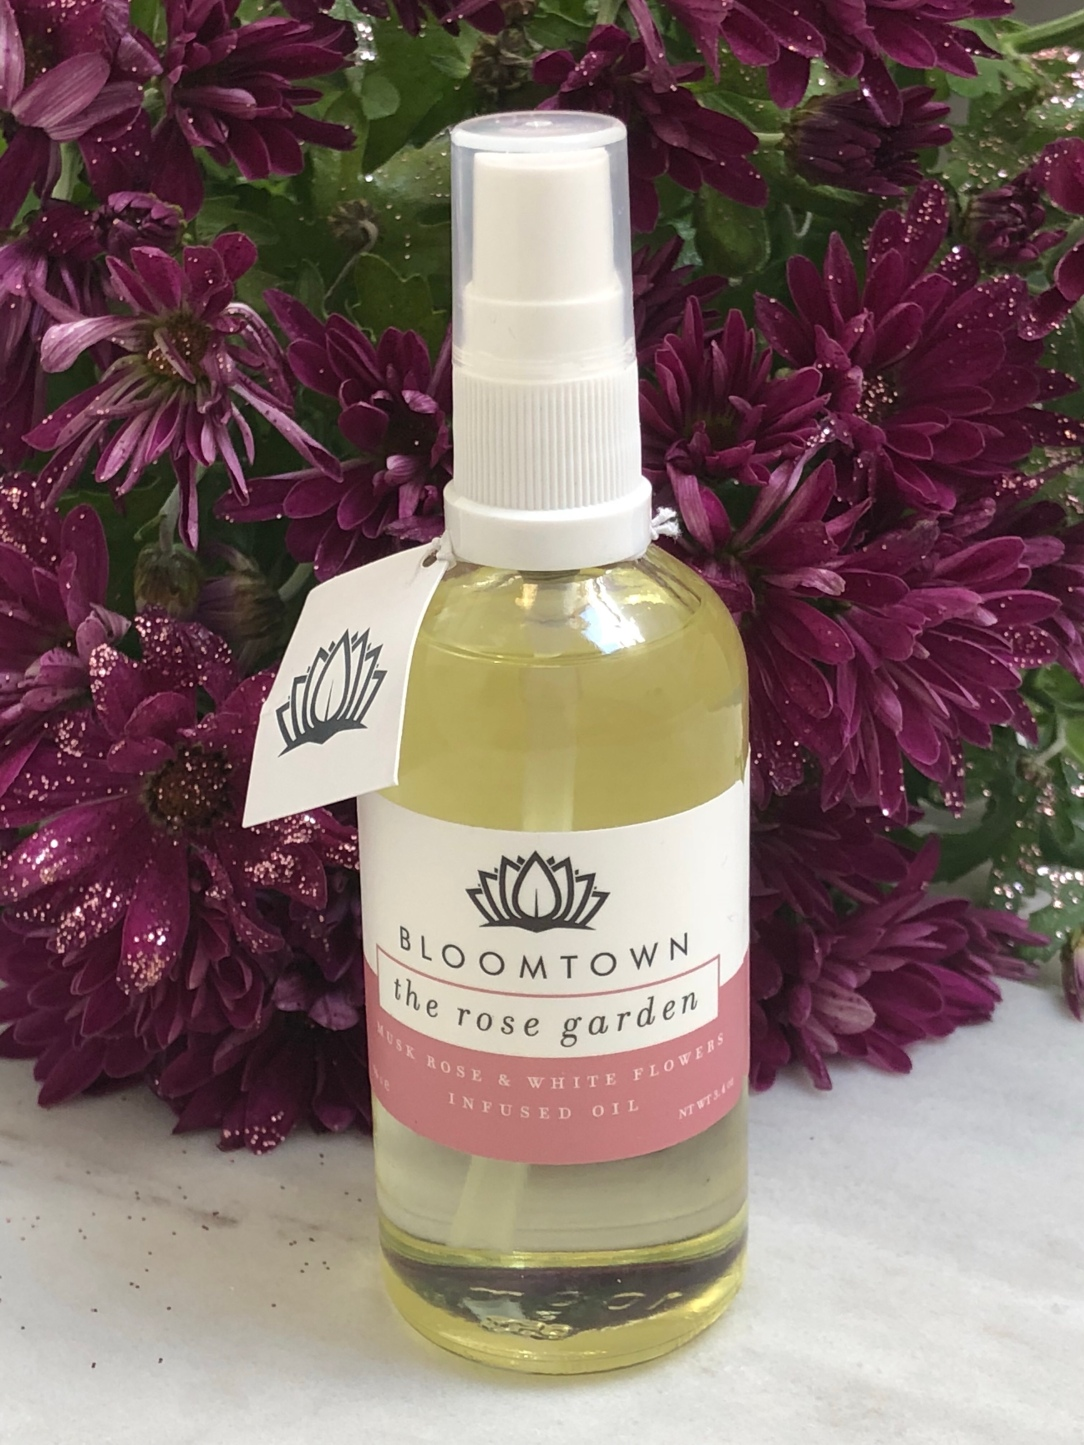 Bloomtown The Rose Garden Musk Rose & White Flowers Infused Oil